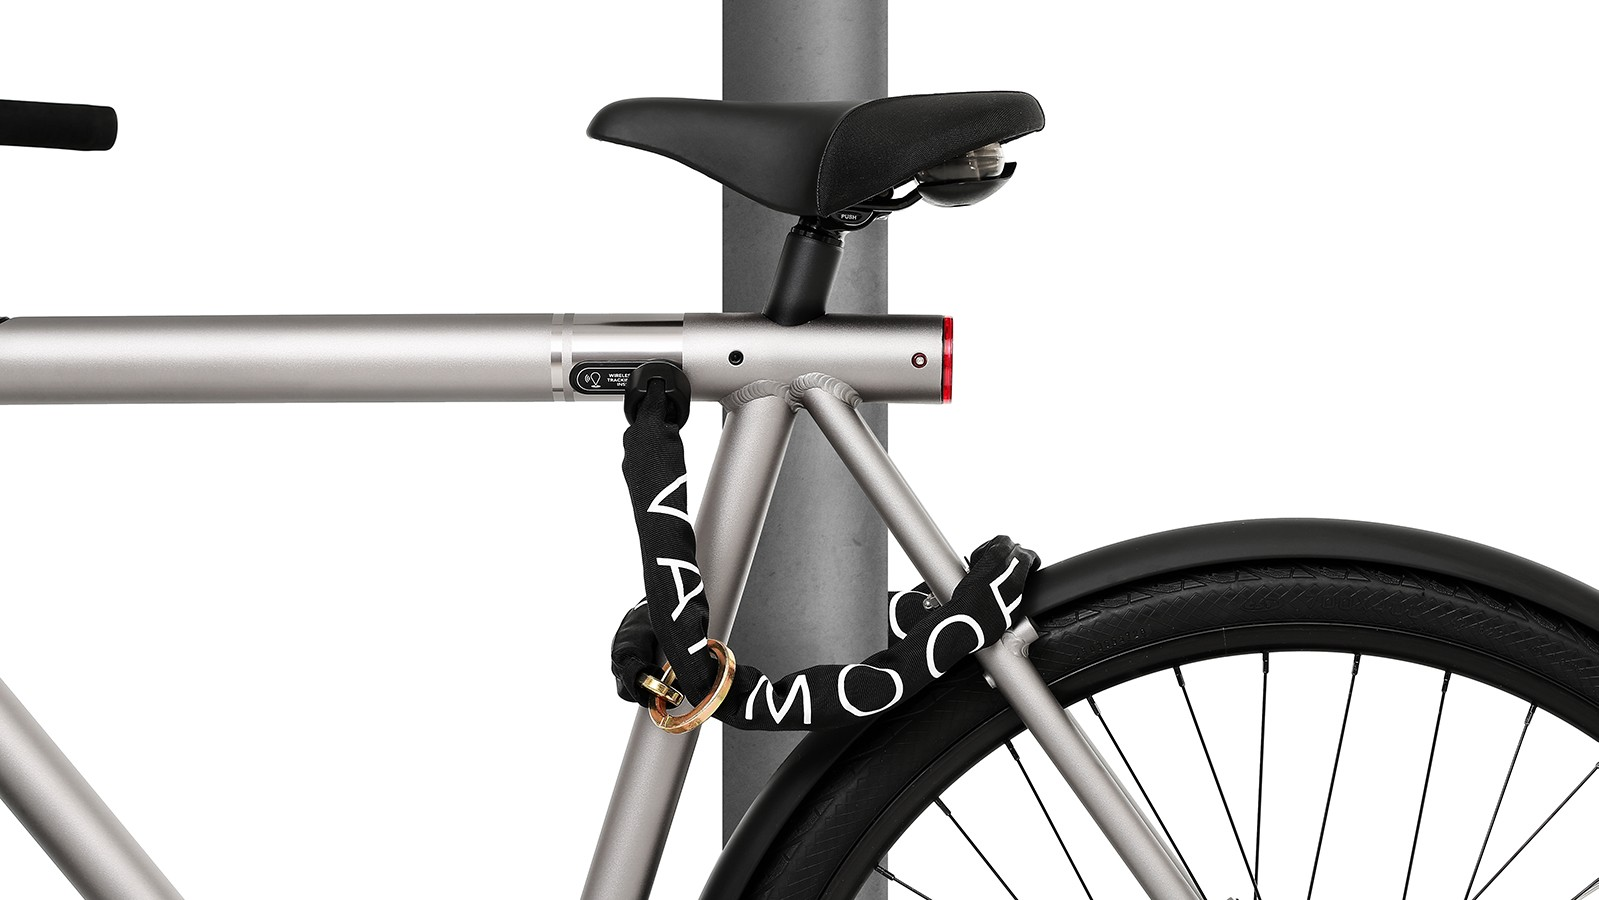 VanMoof+ subscription scheme gets you a bike for £17/$19 per month